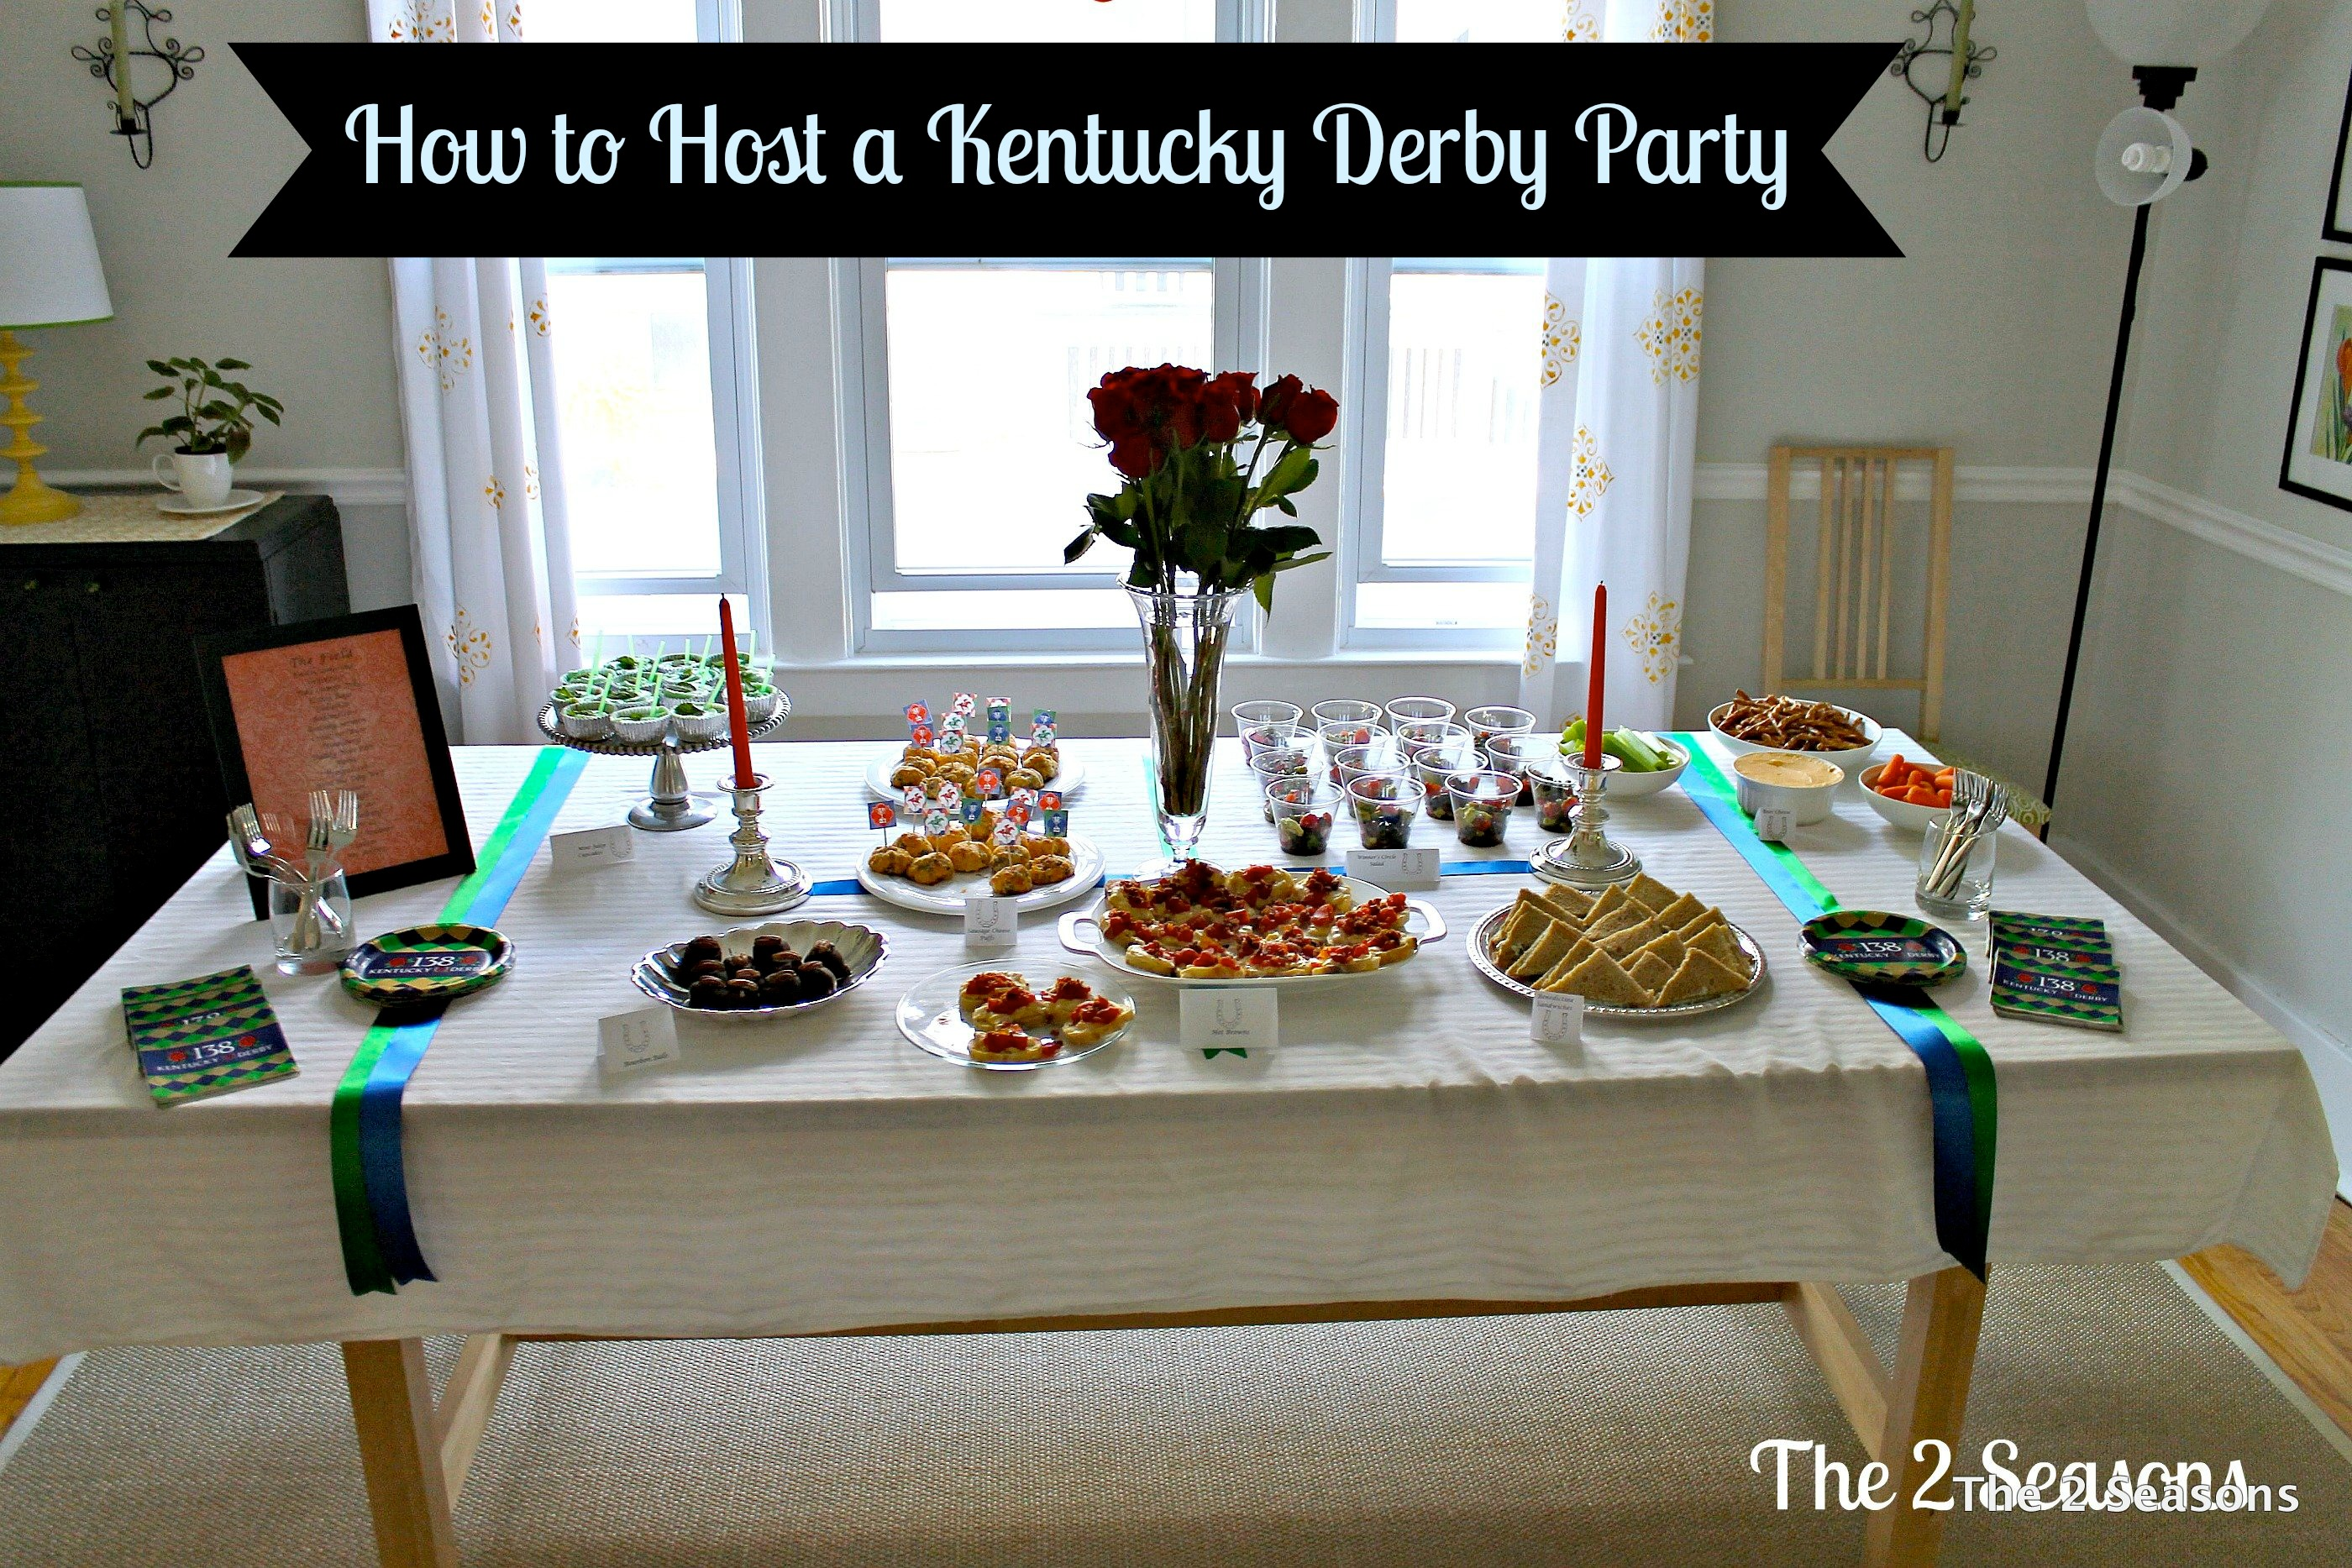 How to host a KY derby Party